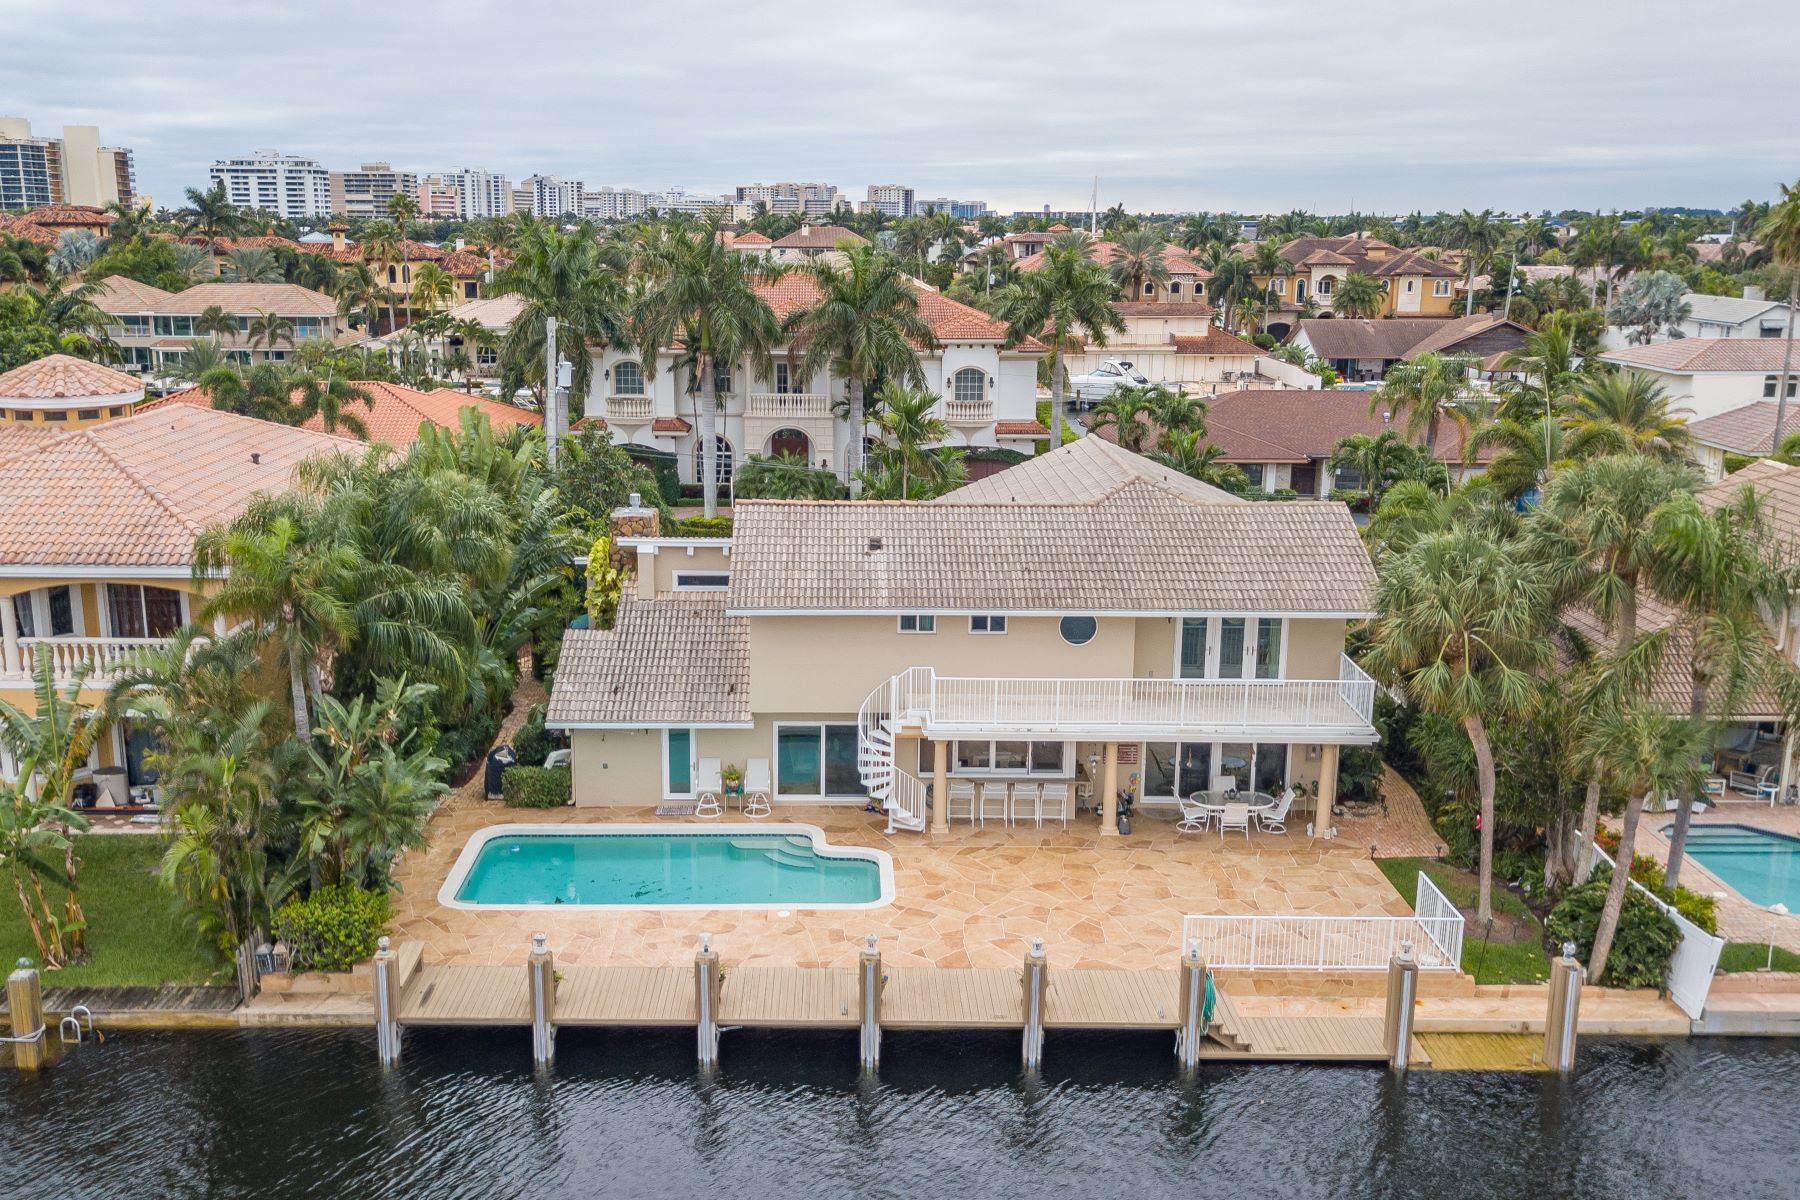 Single Family Homes for Sale at 951 Fern Drive Delray Beach, Florida 33483 United States